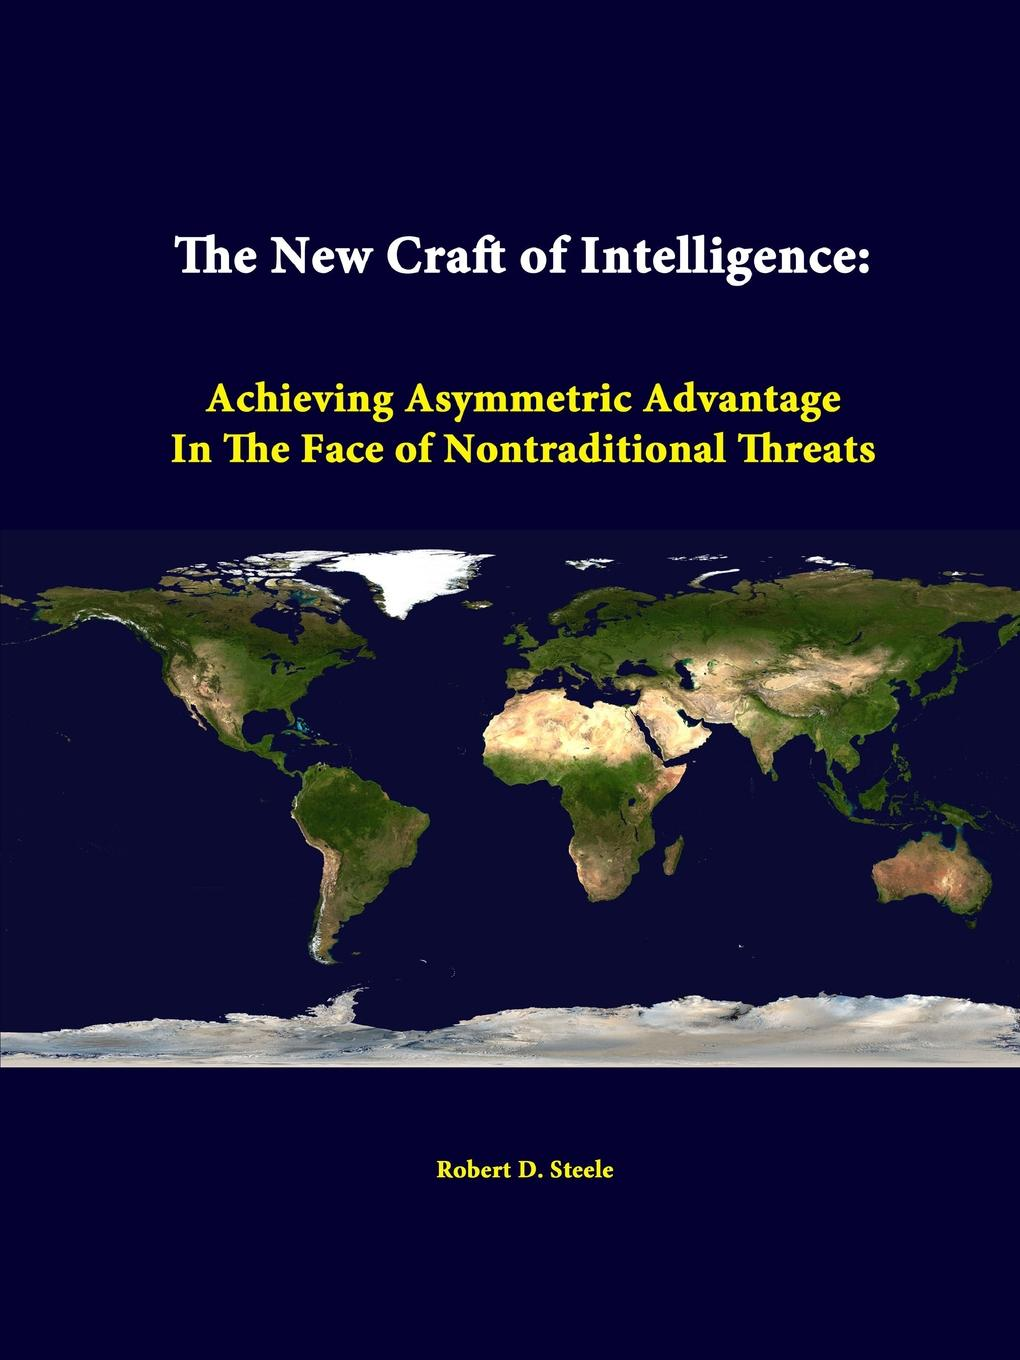 Robert D. Steele, Strategic Studies Institute The New Craft of Intelligence. Achieving Asymmetric Advantage in the Face of Nontraditional Threats leonard wong strategic studies institute stifled innovation developing tomorrow